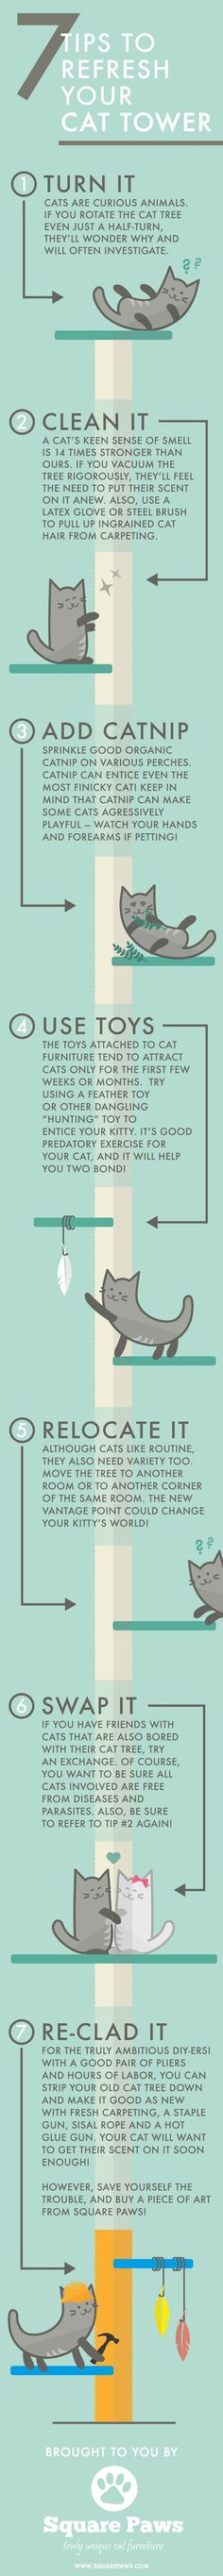 7 Tips to Refresh Your Cat Tower — Square Paws